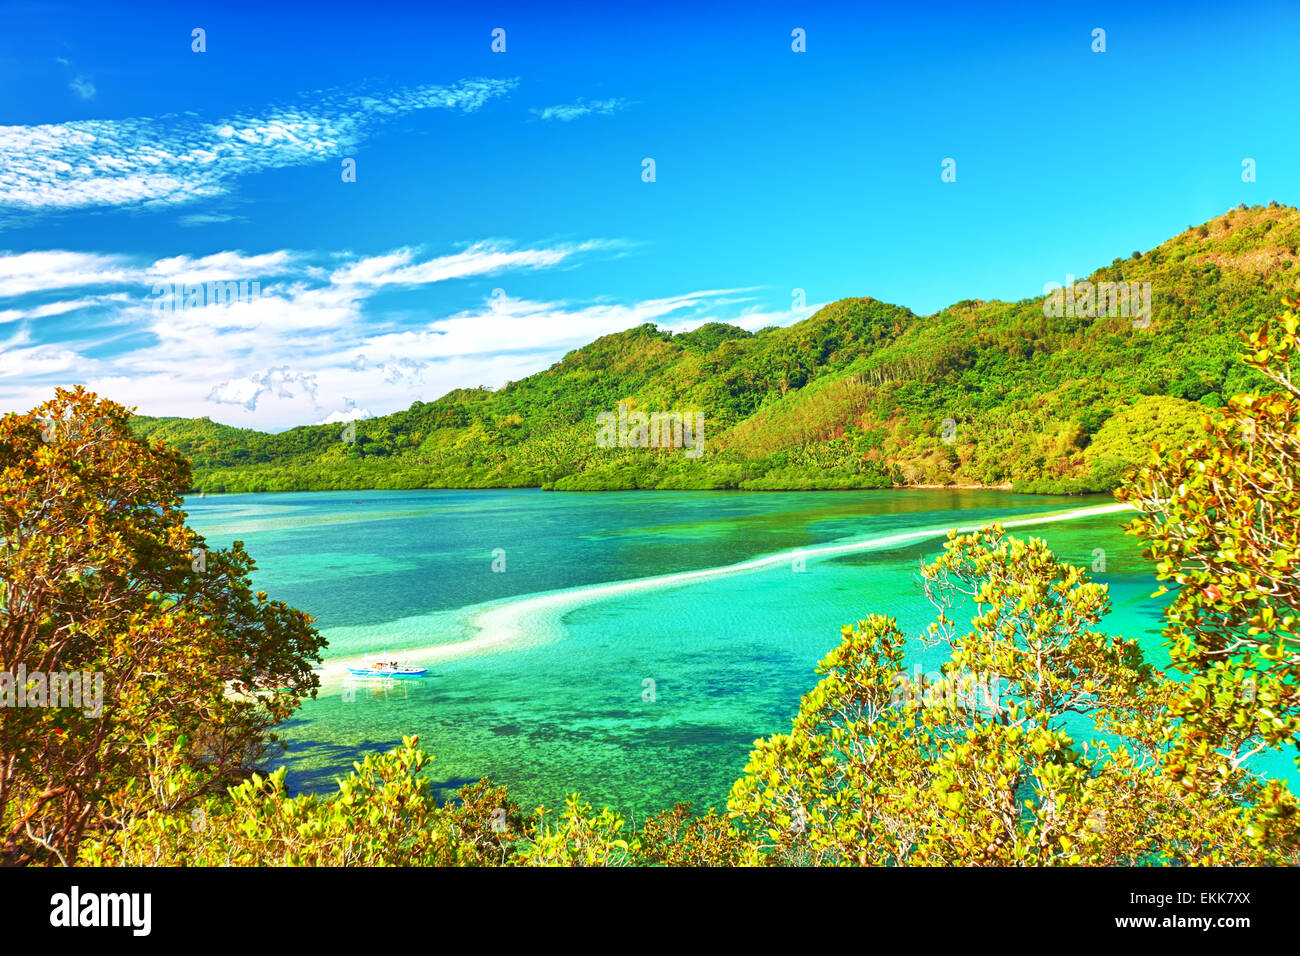 Beautiful view of a tropical island Snake. Philippines - Stock Image